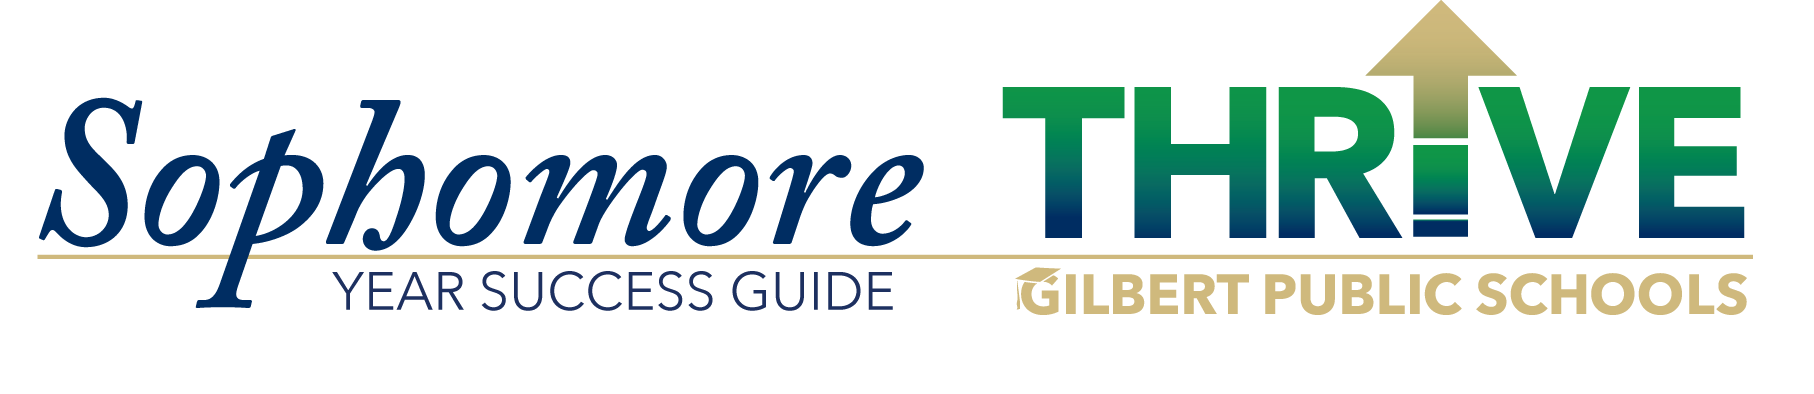 Sophomore Year Success Guide THRIVE Gilbert Public Schools